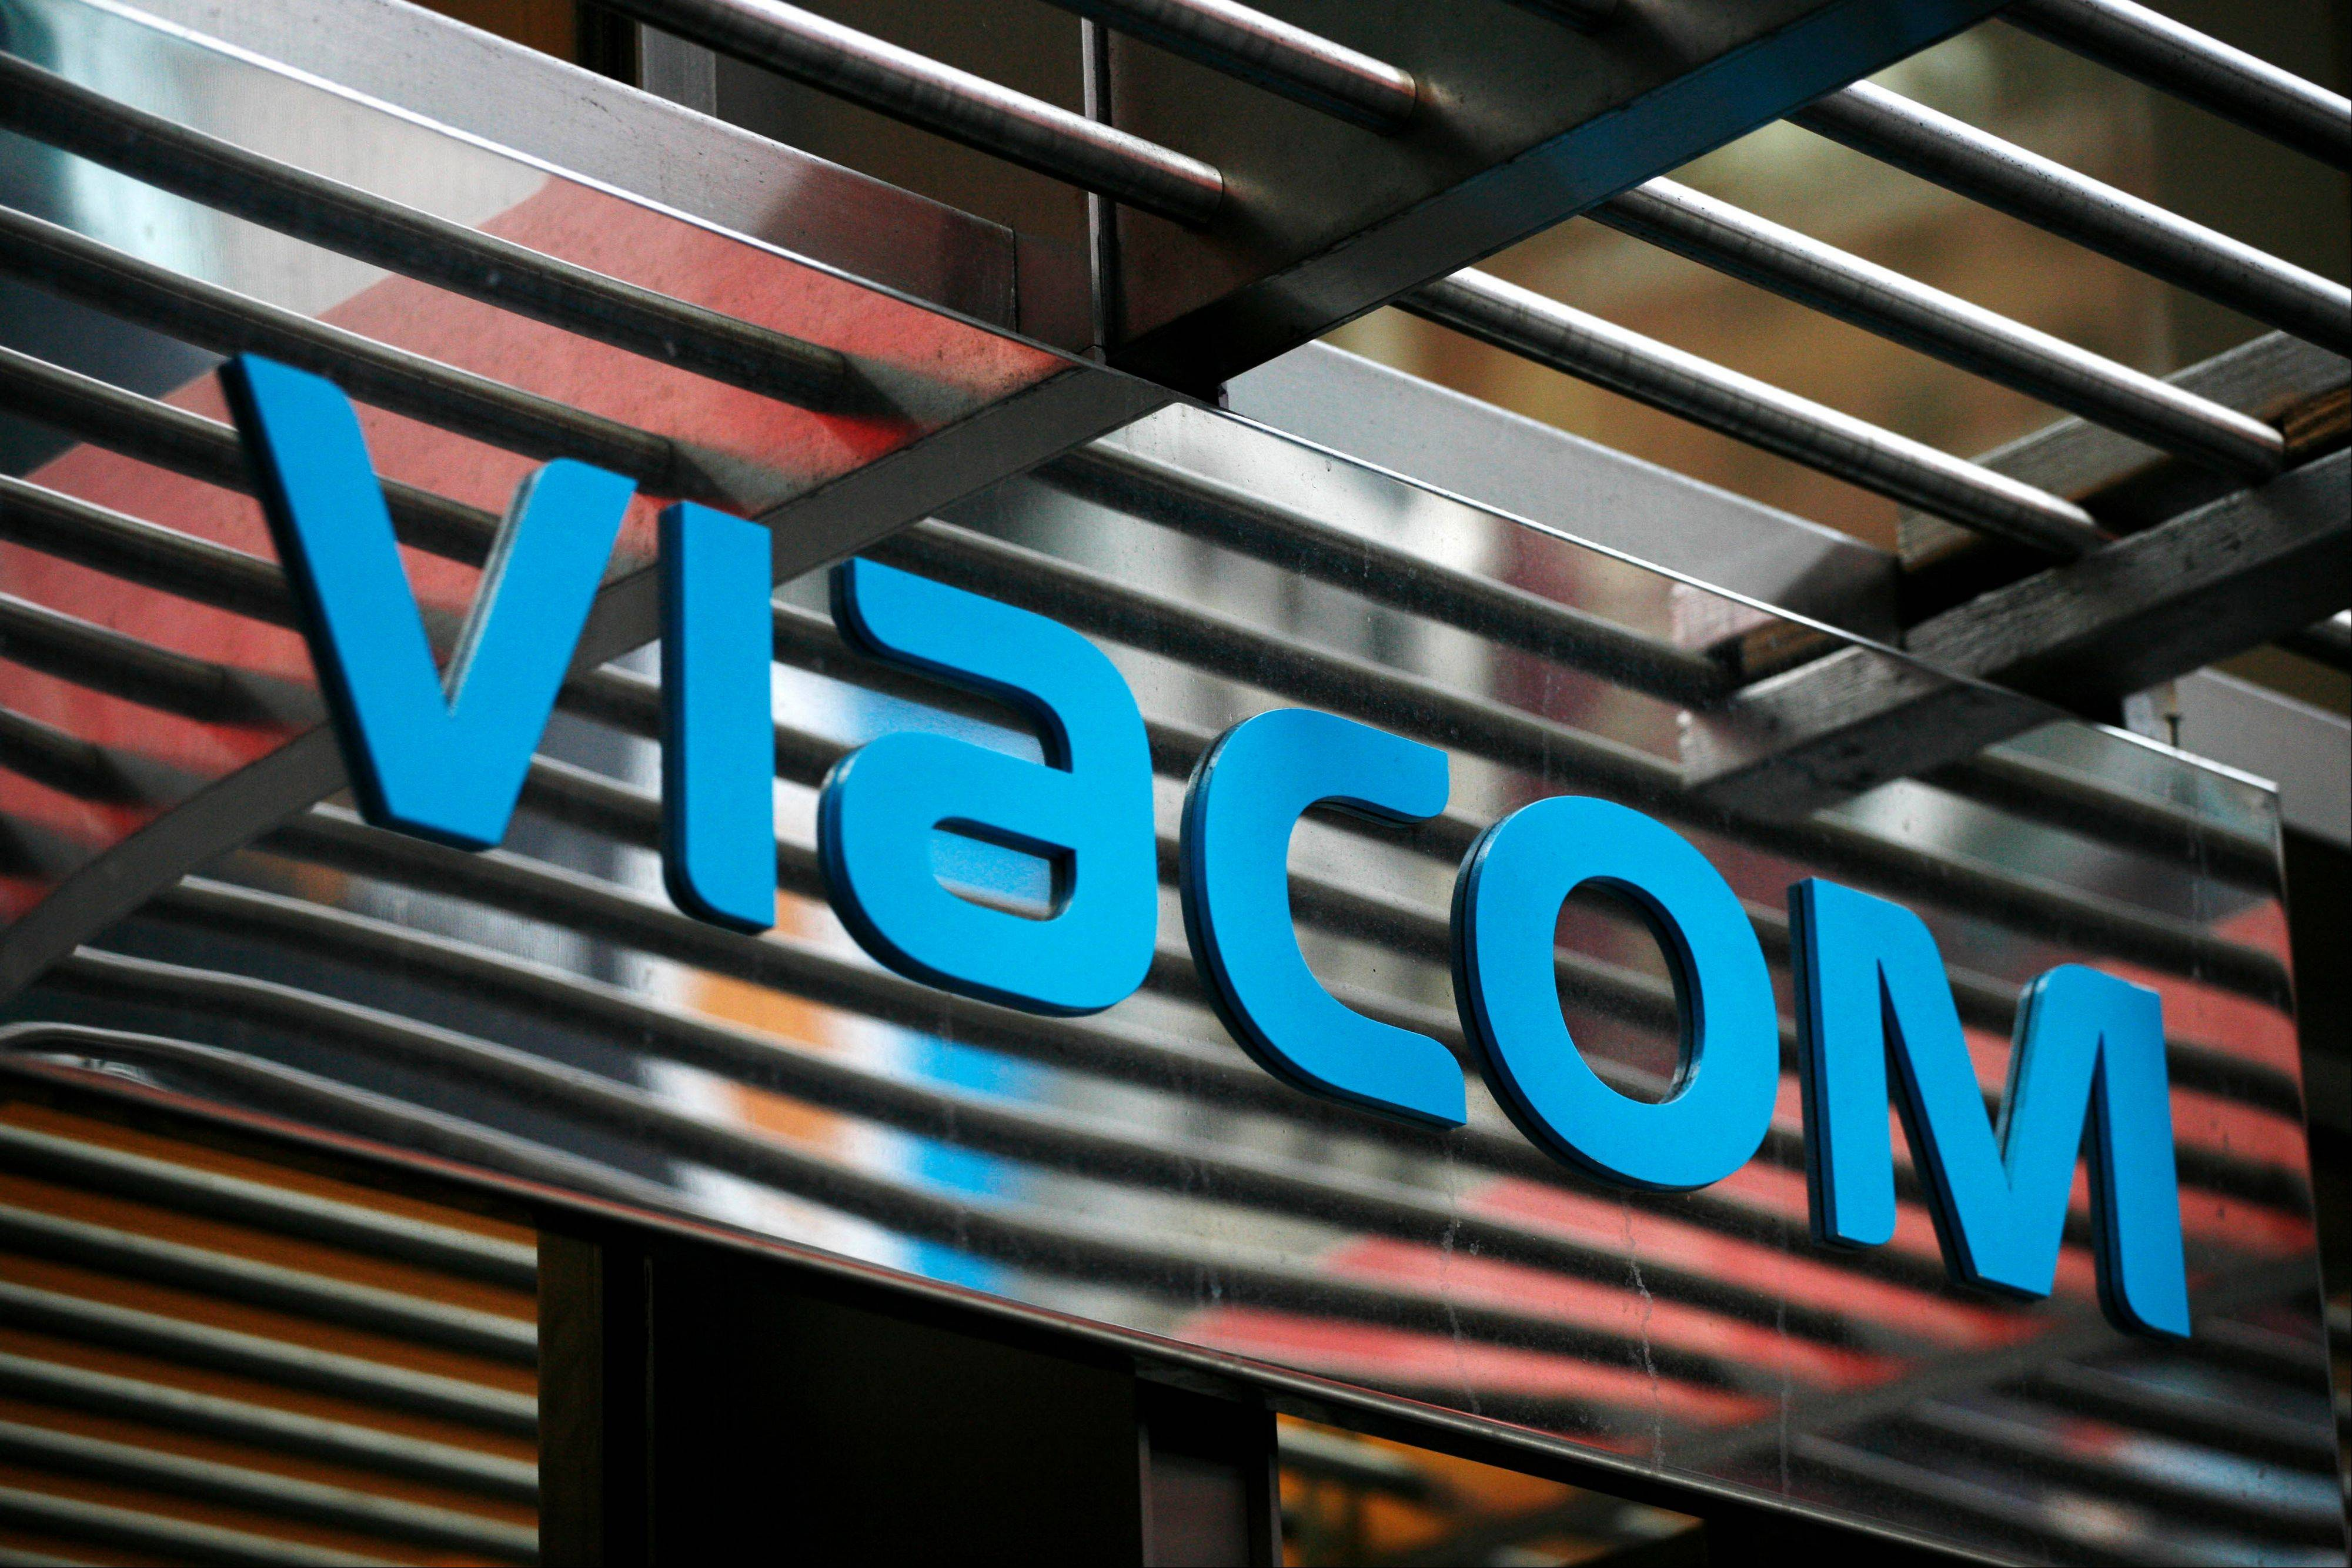 Viacom Inc., the media company controlled by billionaire Sumner Redstone, reported a 16 percent rise in net income, topping estimates as sales rose at cable- television networks such as Nickelodeon.